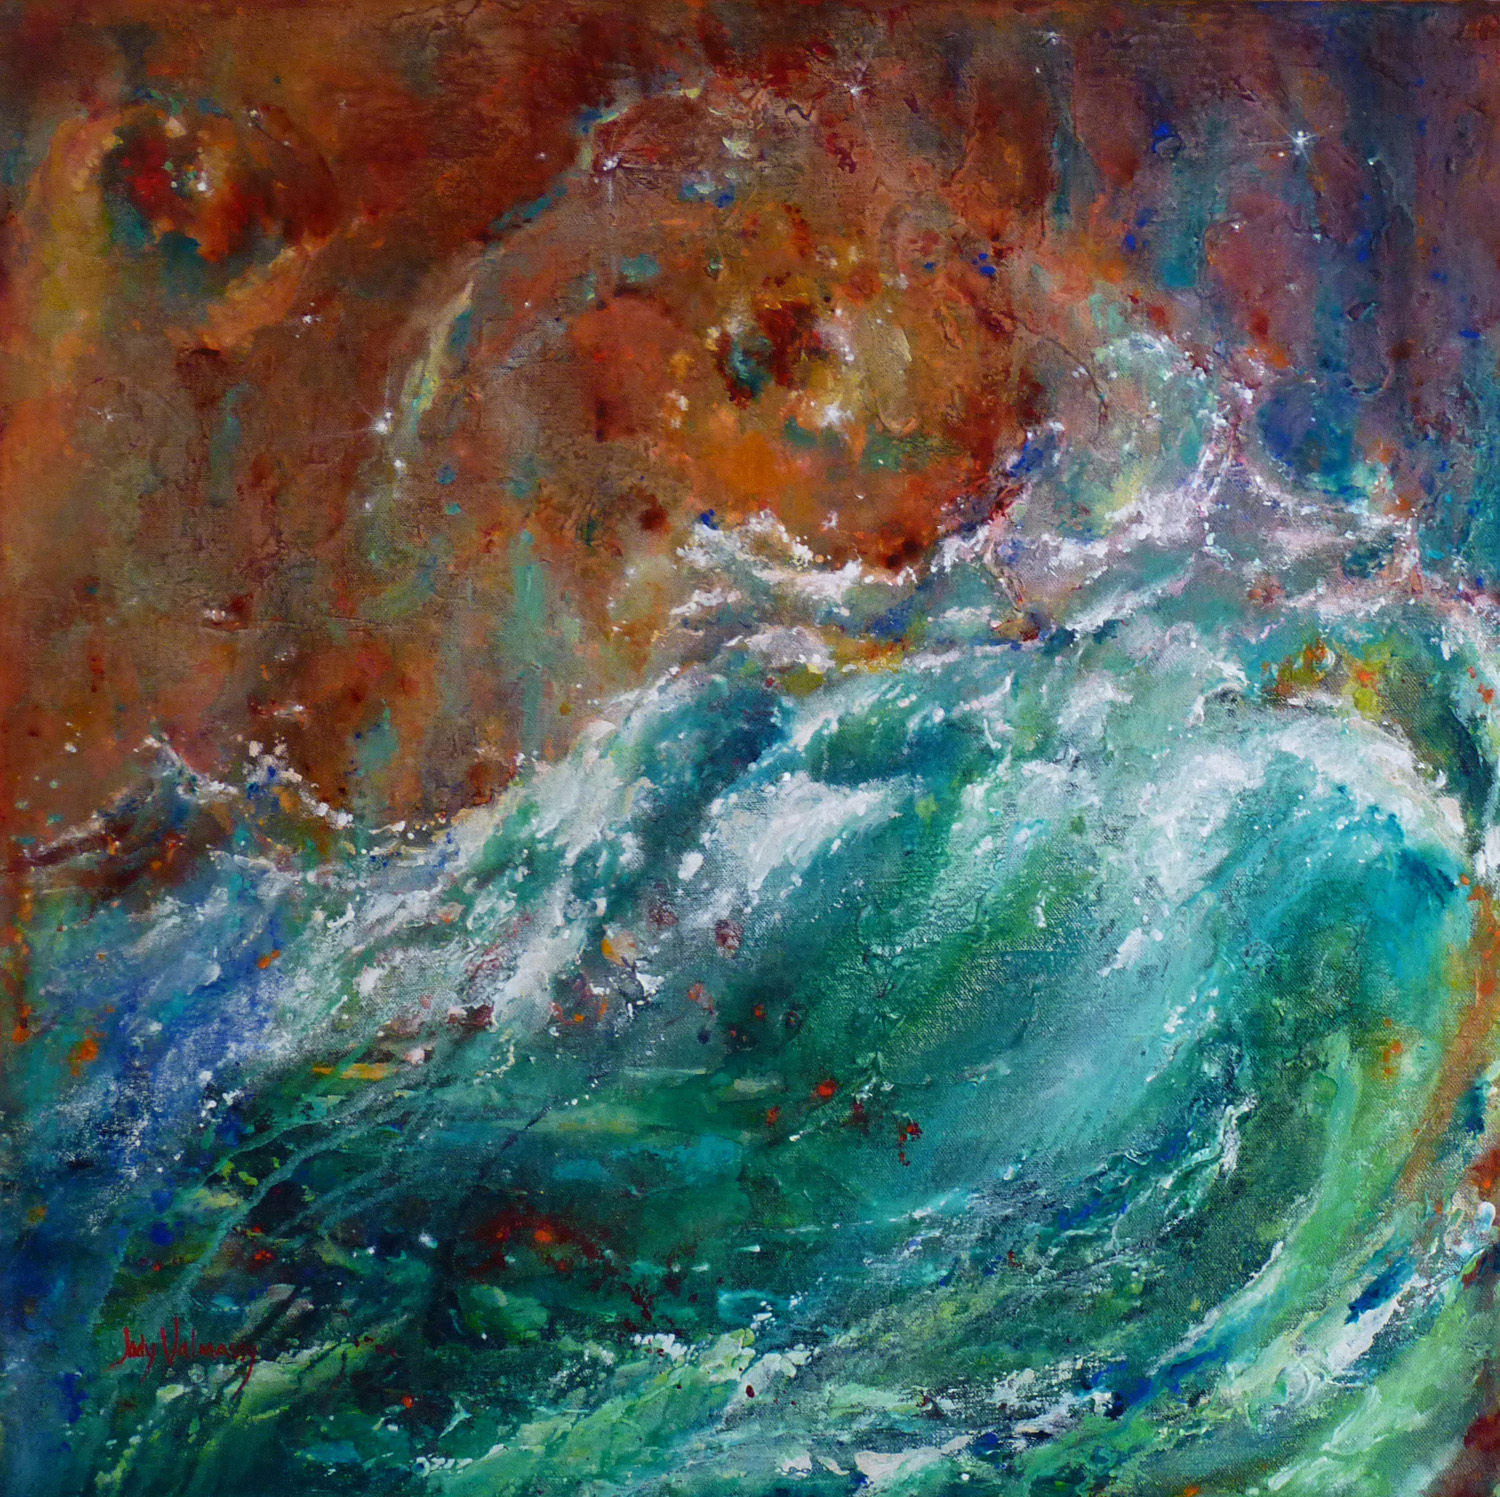 Dancing Waves - SOLD